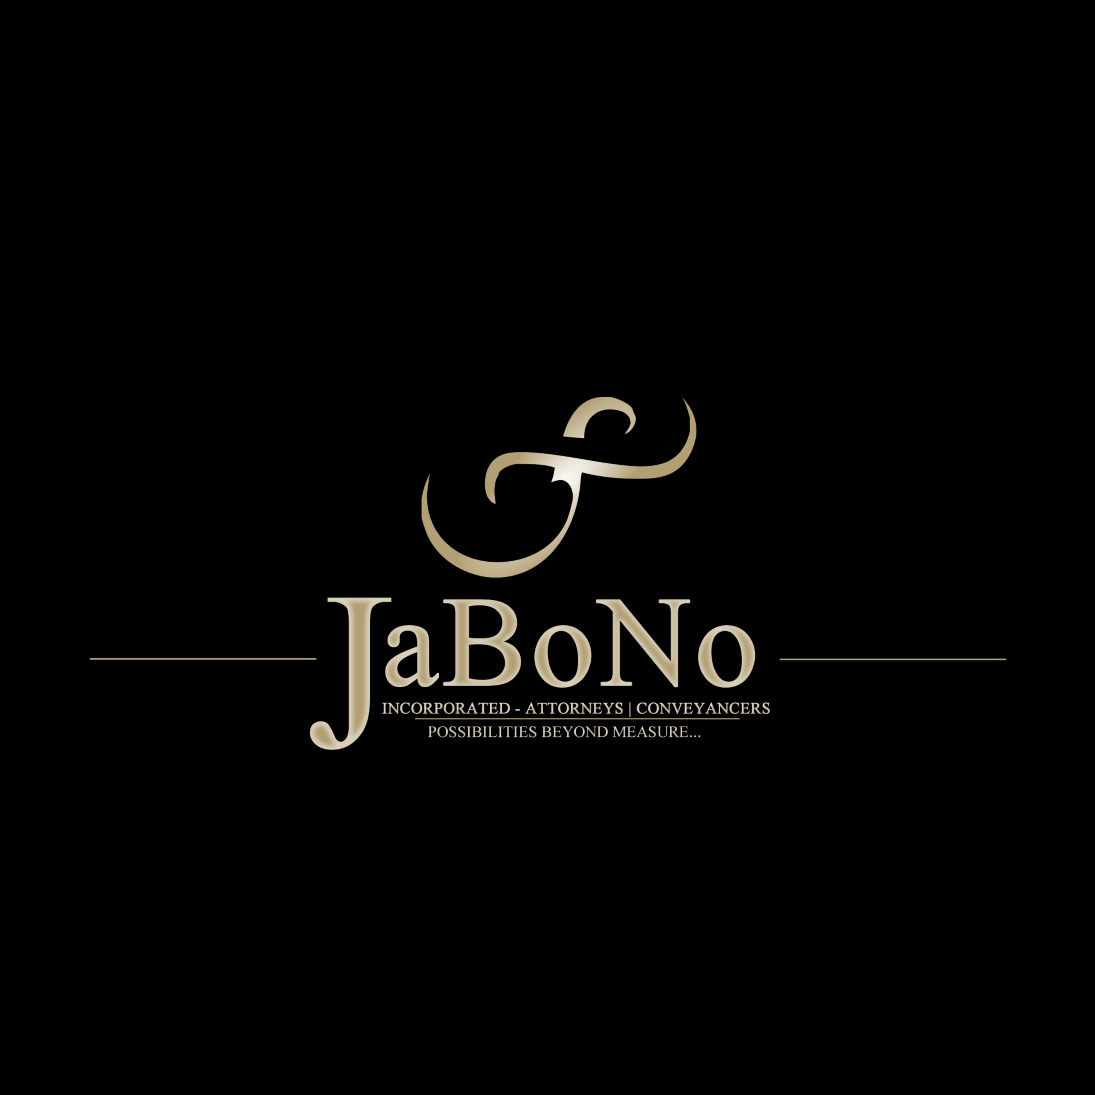 Jabono logo black and gold by Nkolex (pty) ltd